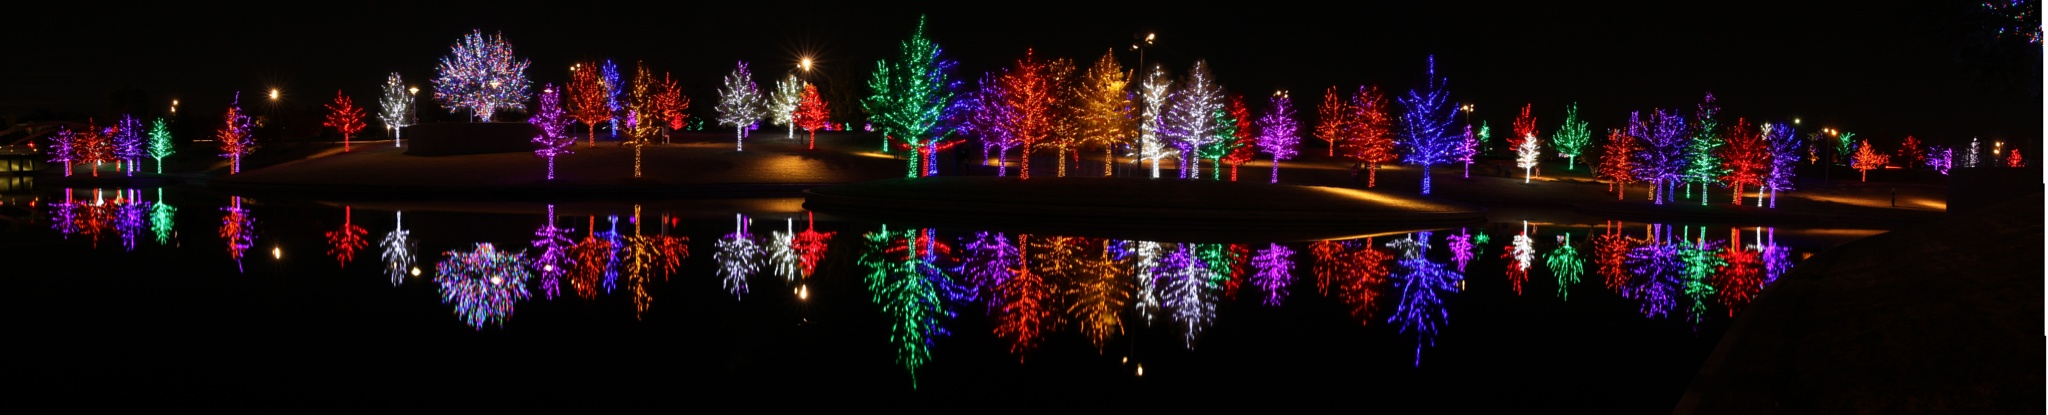 panorama@ VITRUVIAN PARK IN ADDSION TEXAS by Galen Johnson